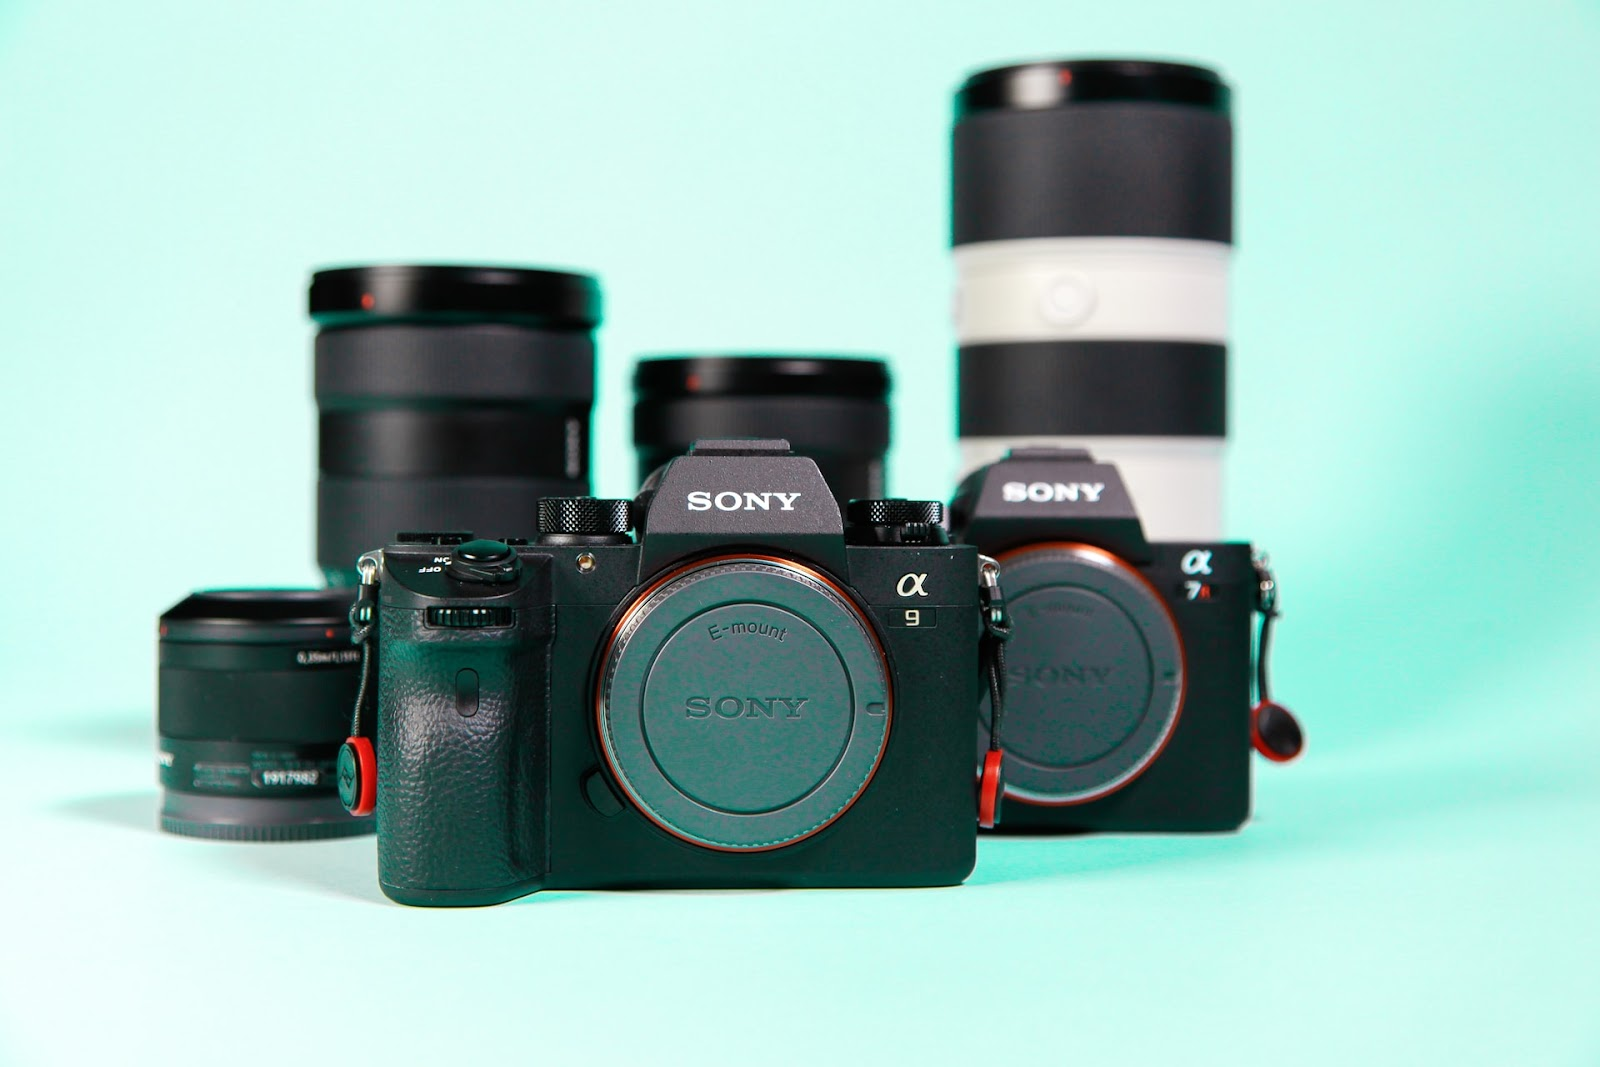 There are fewer lens and accessory options with mirrorless cameras.